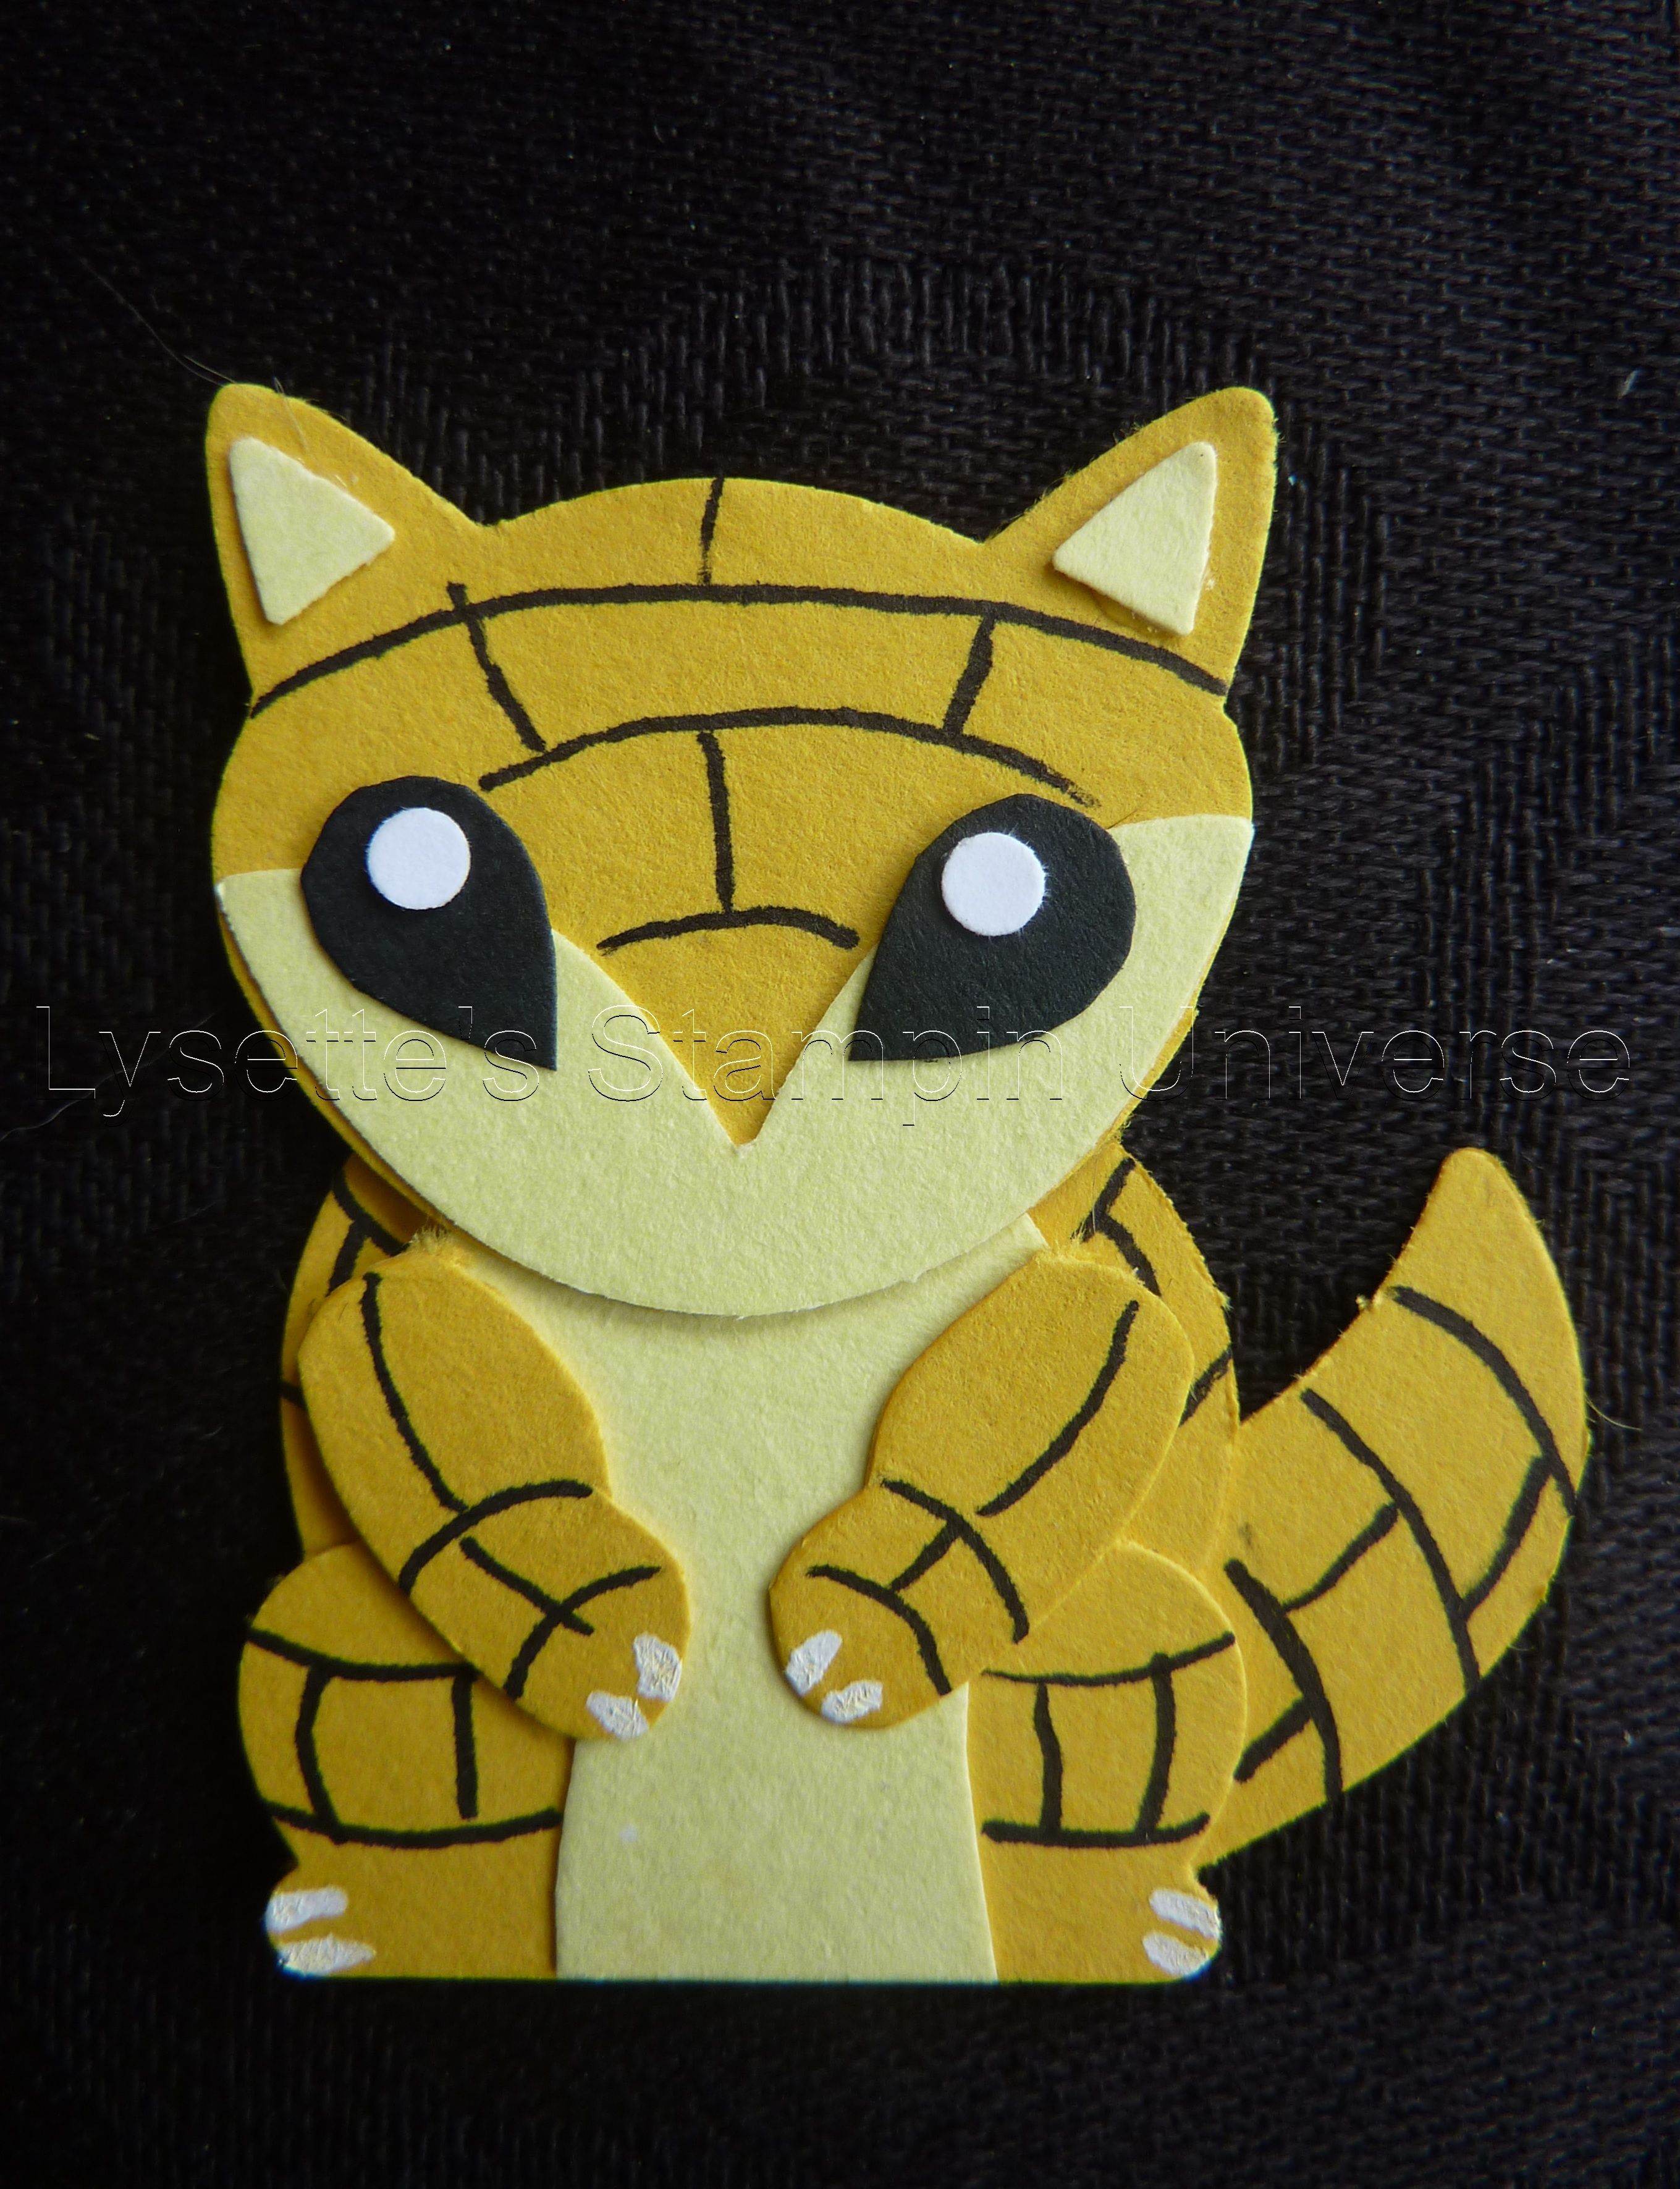 Gotta Craft Them All chalenge dag 28: Sandshrew https://www.facebook.com/Lysettes.stampin.universe/home